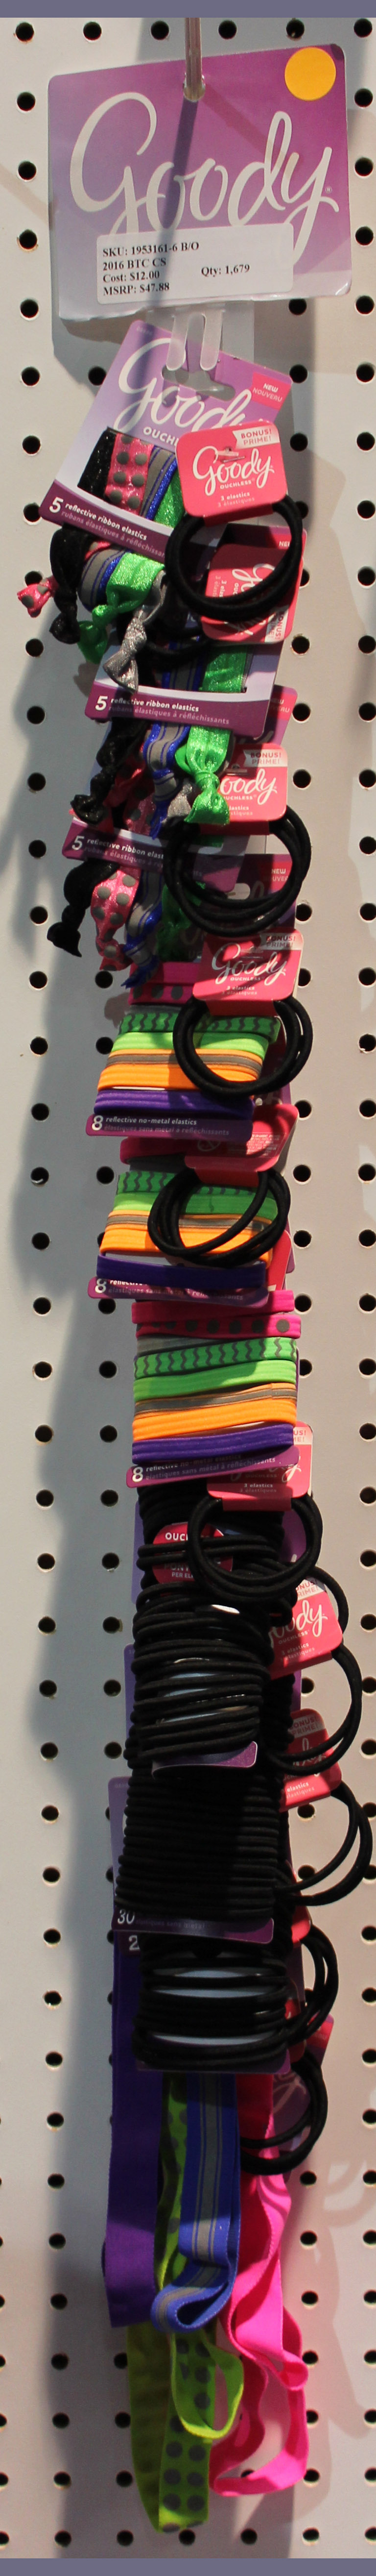 Goody Elastics and Headwrap Clip Strip of 12 Items